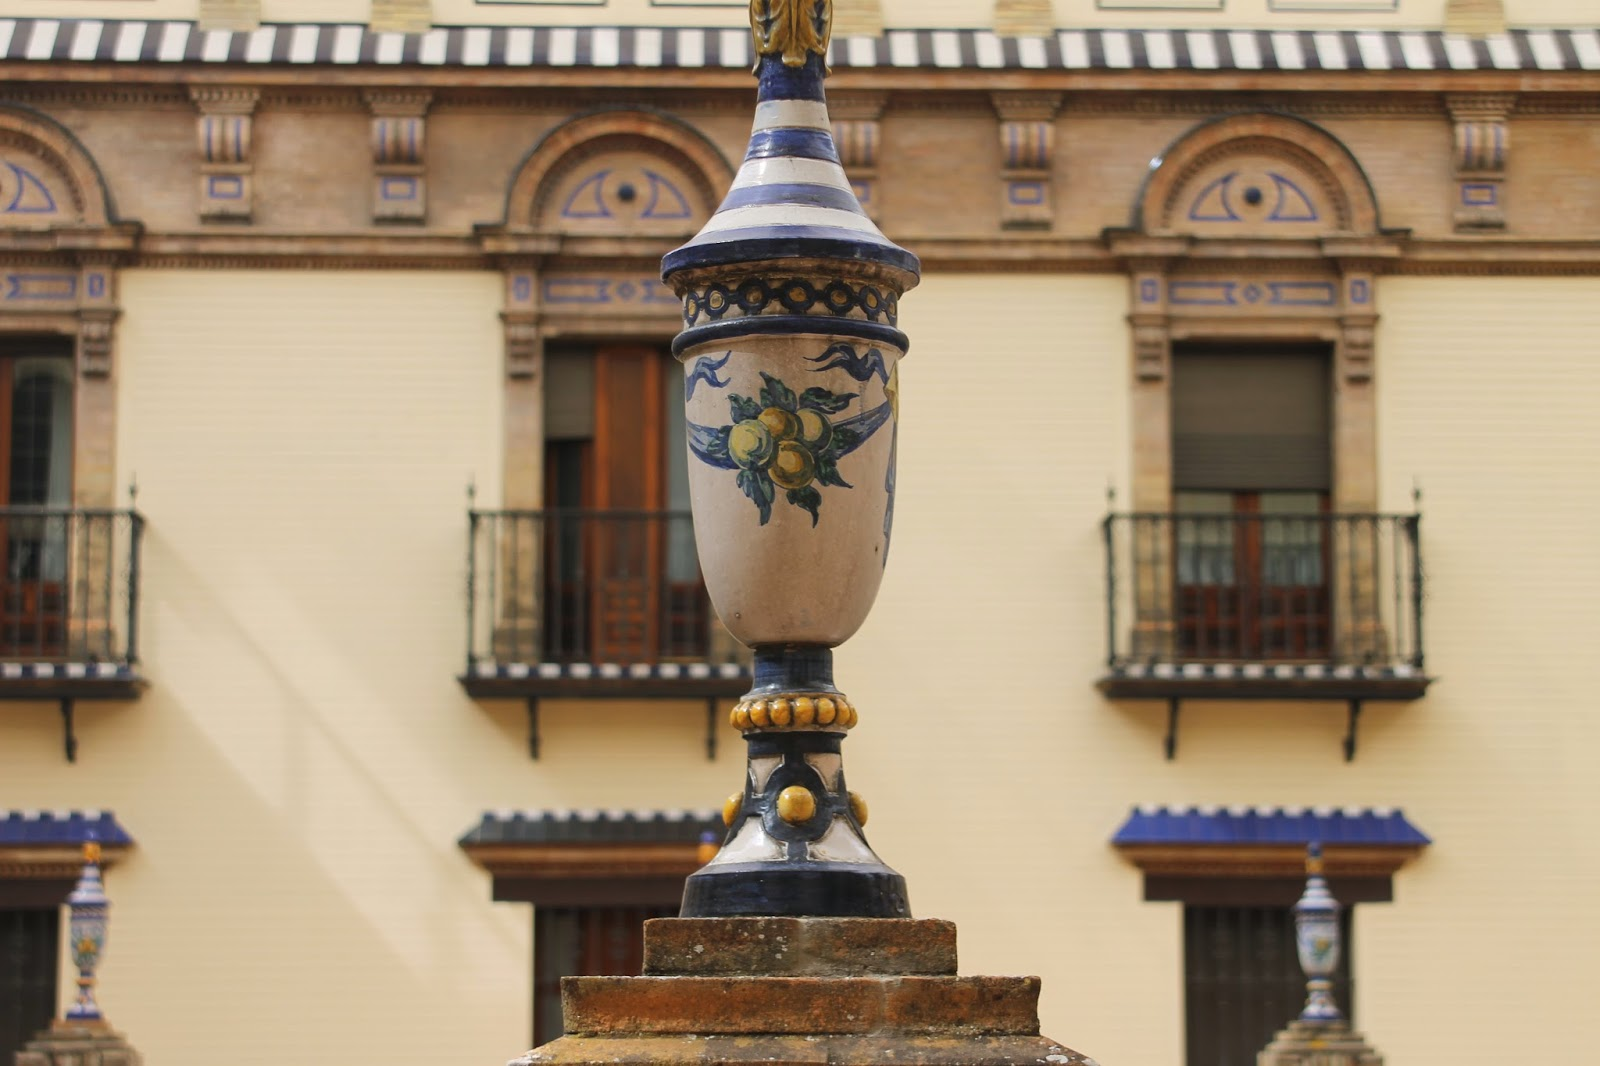 SEVILLE, SPAIN PHOTO DIARY - PART 1